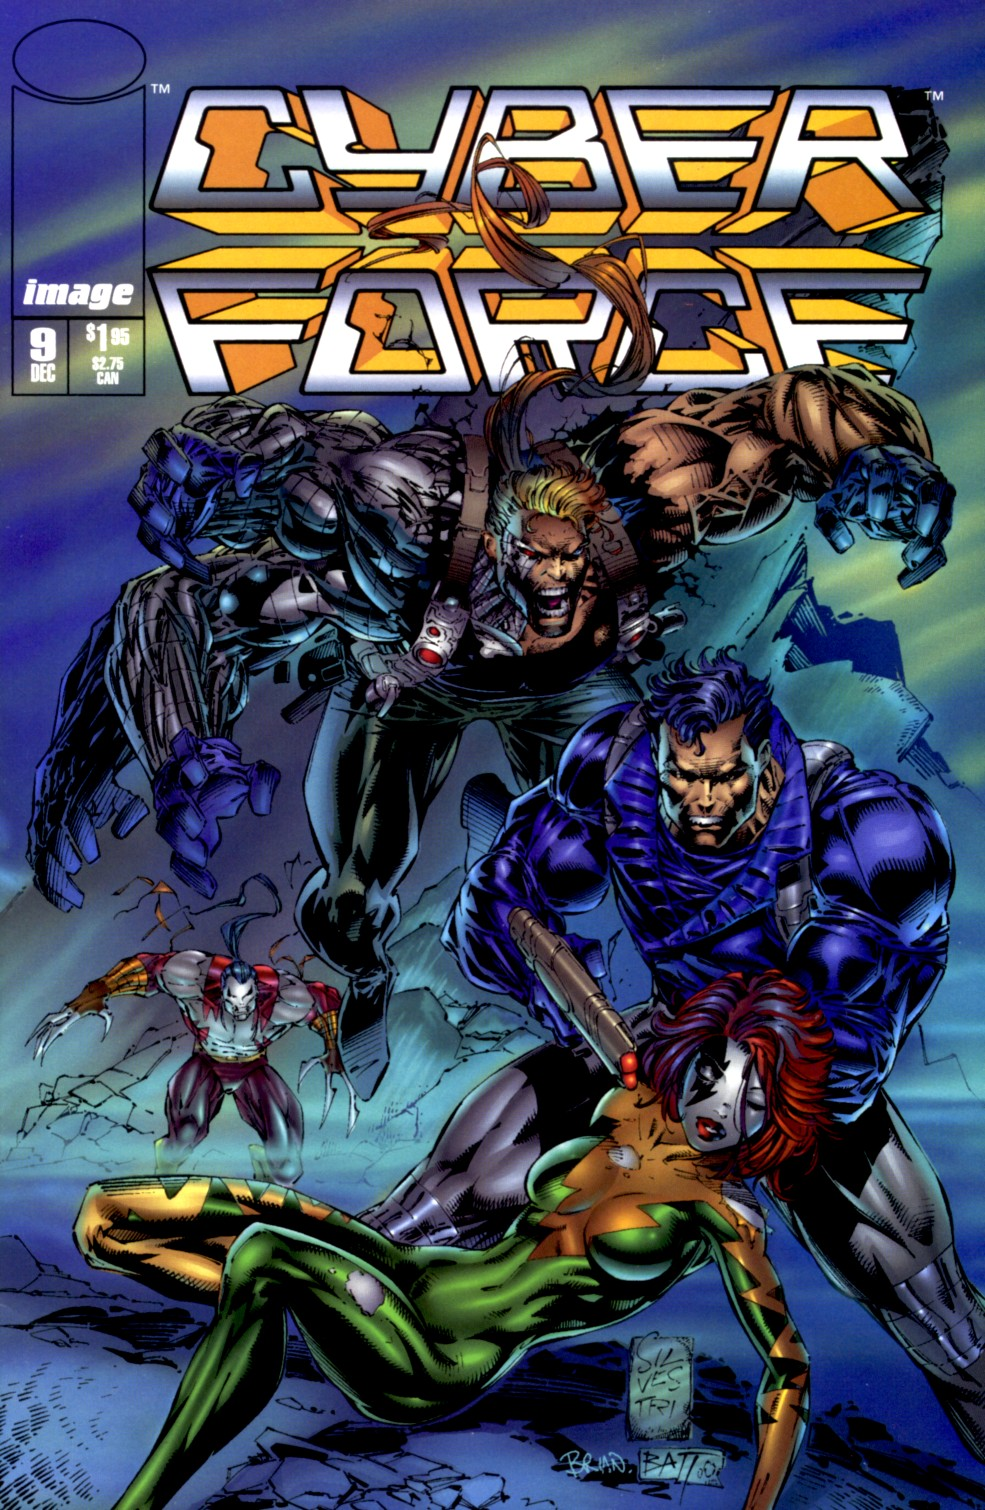 Cyberforce (1993) issue 9 - Page 1